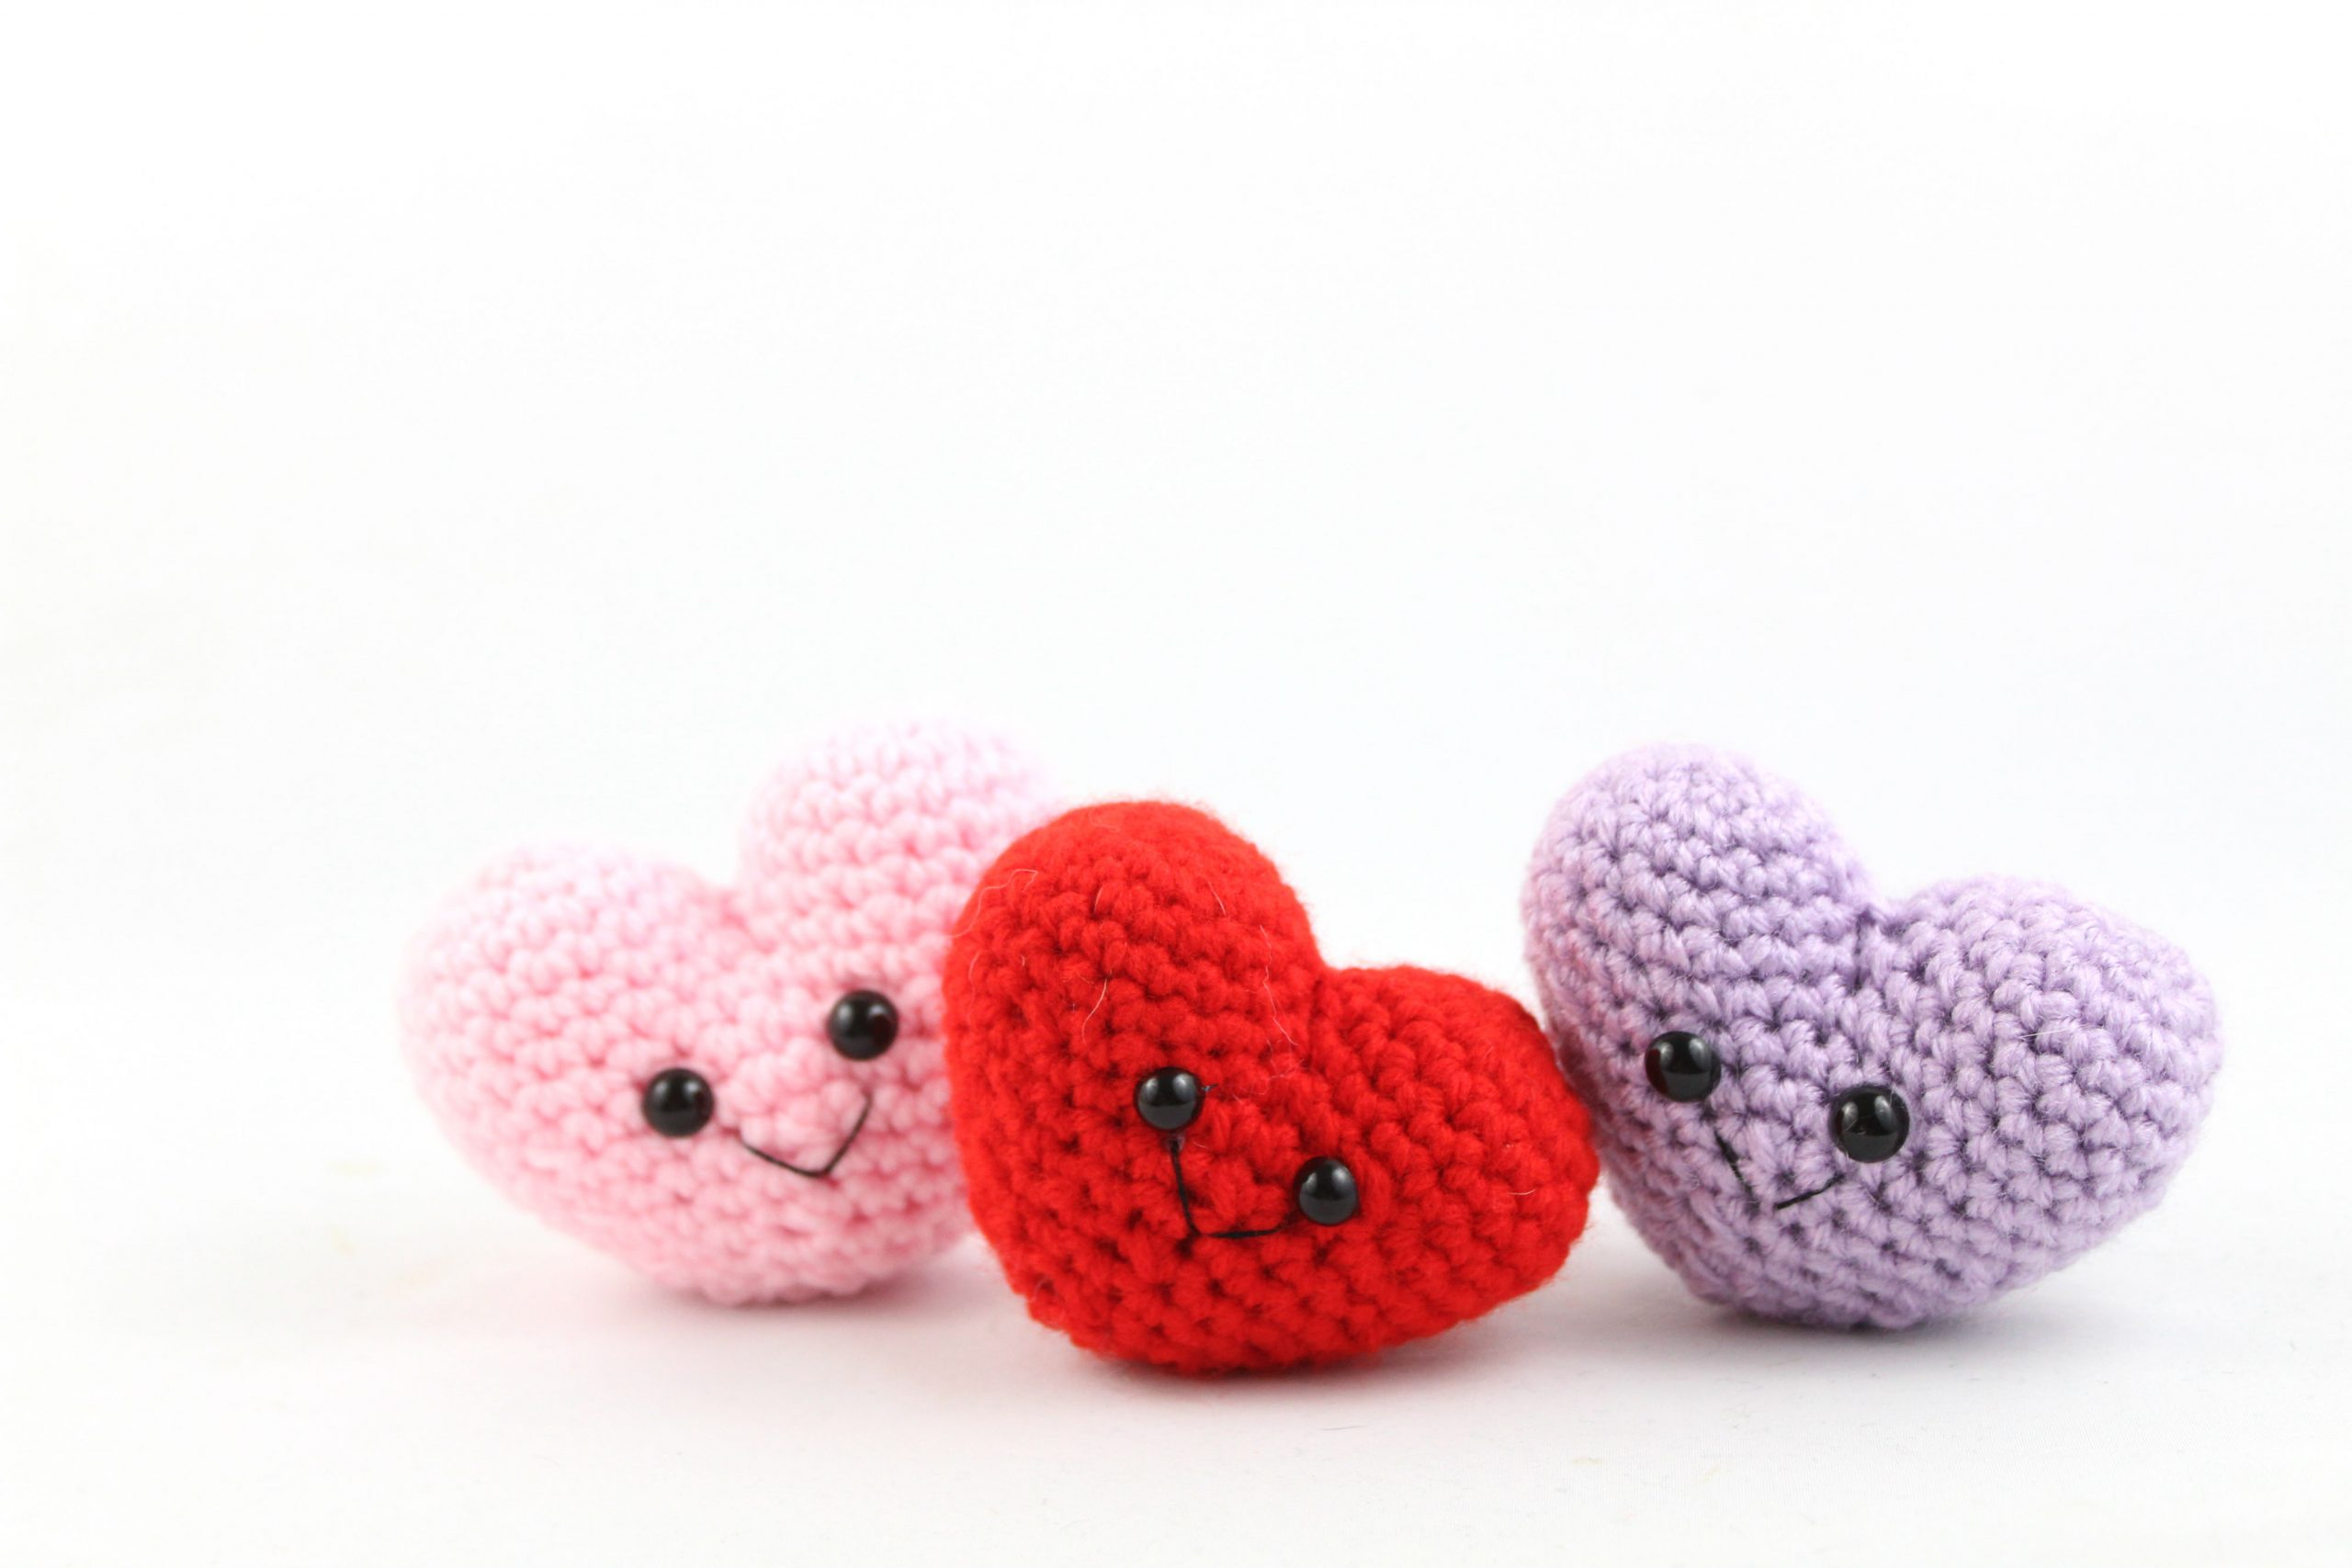 How to crochet a Red Bird